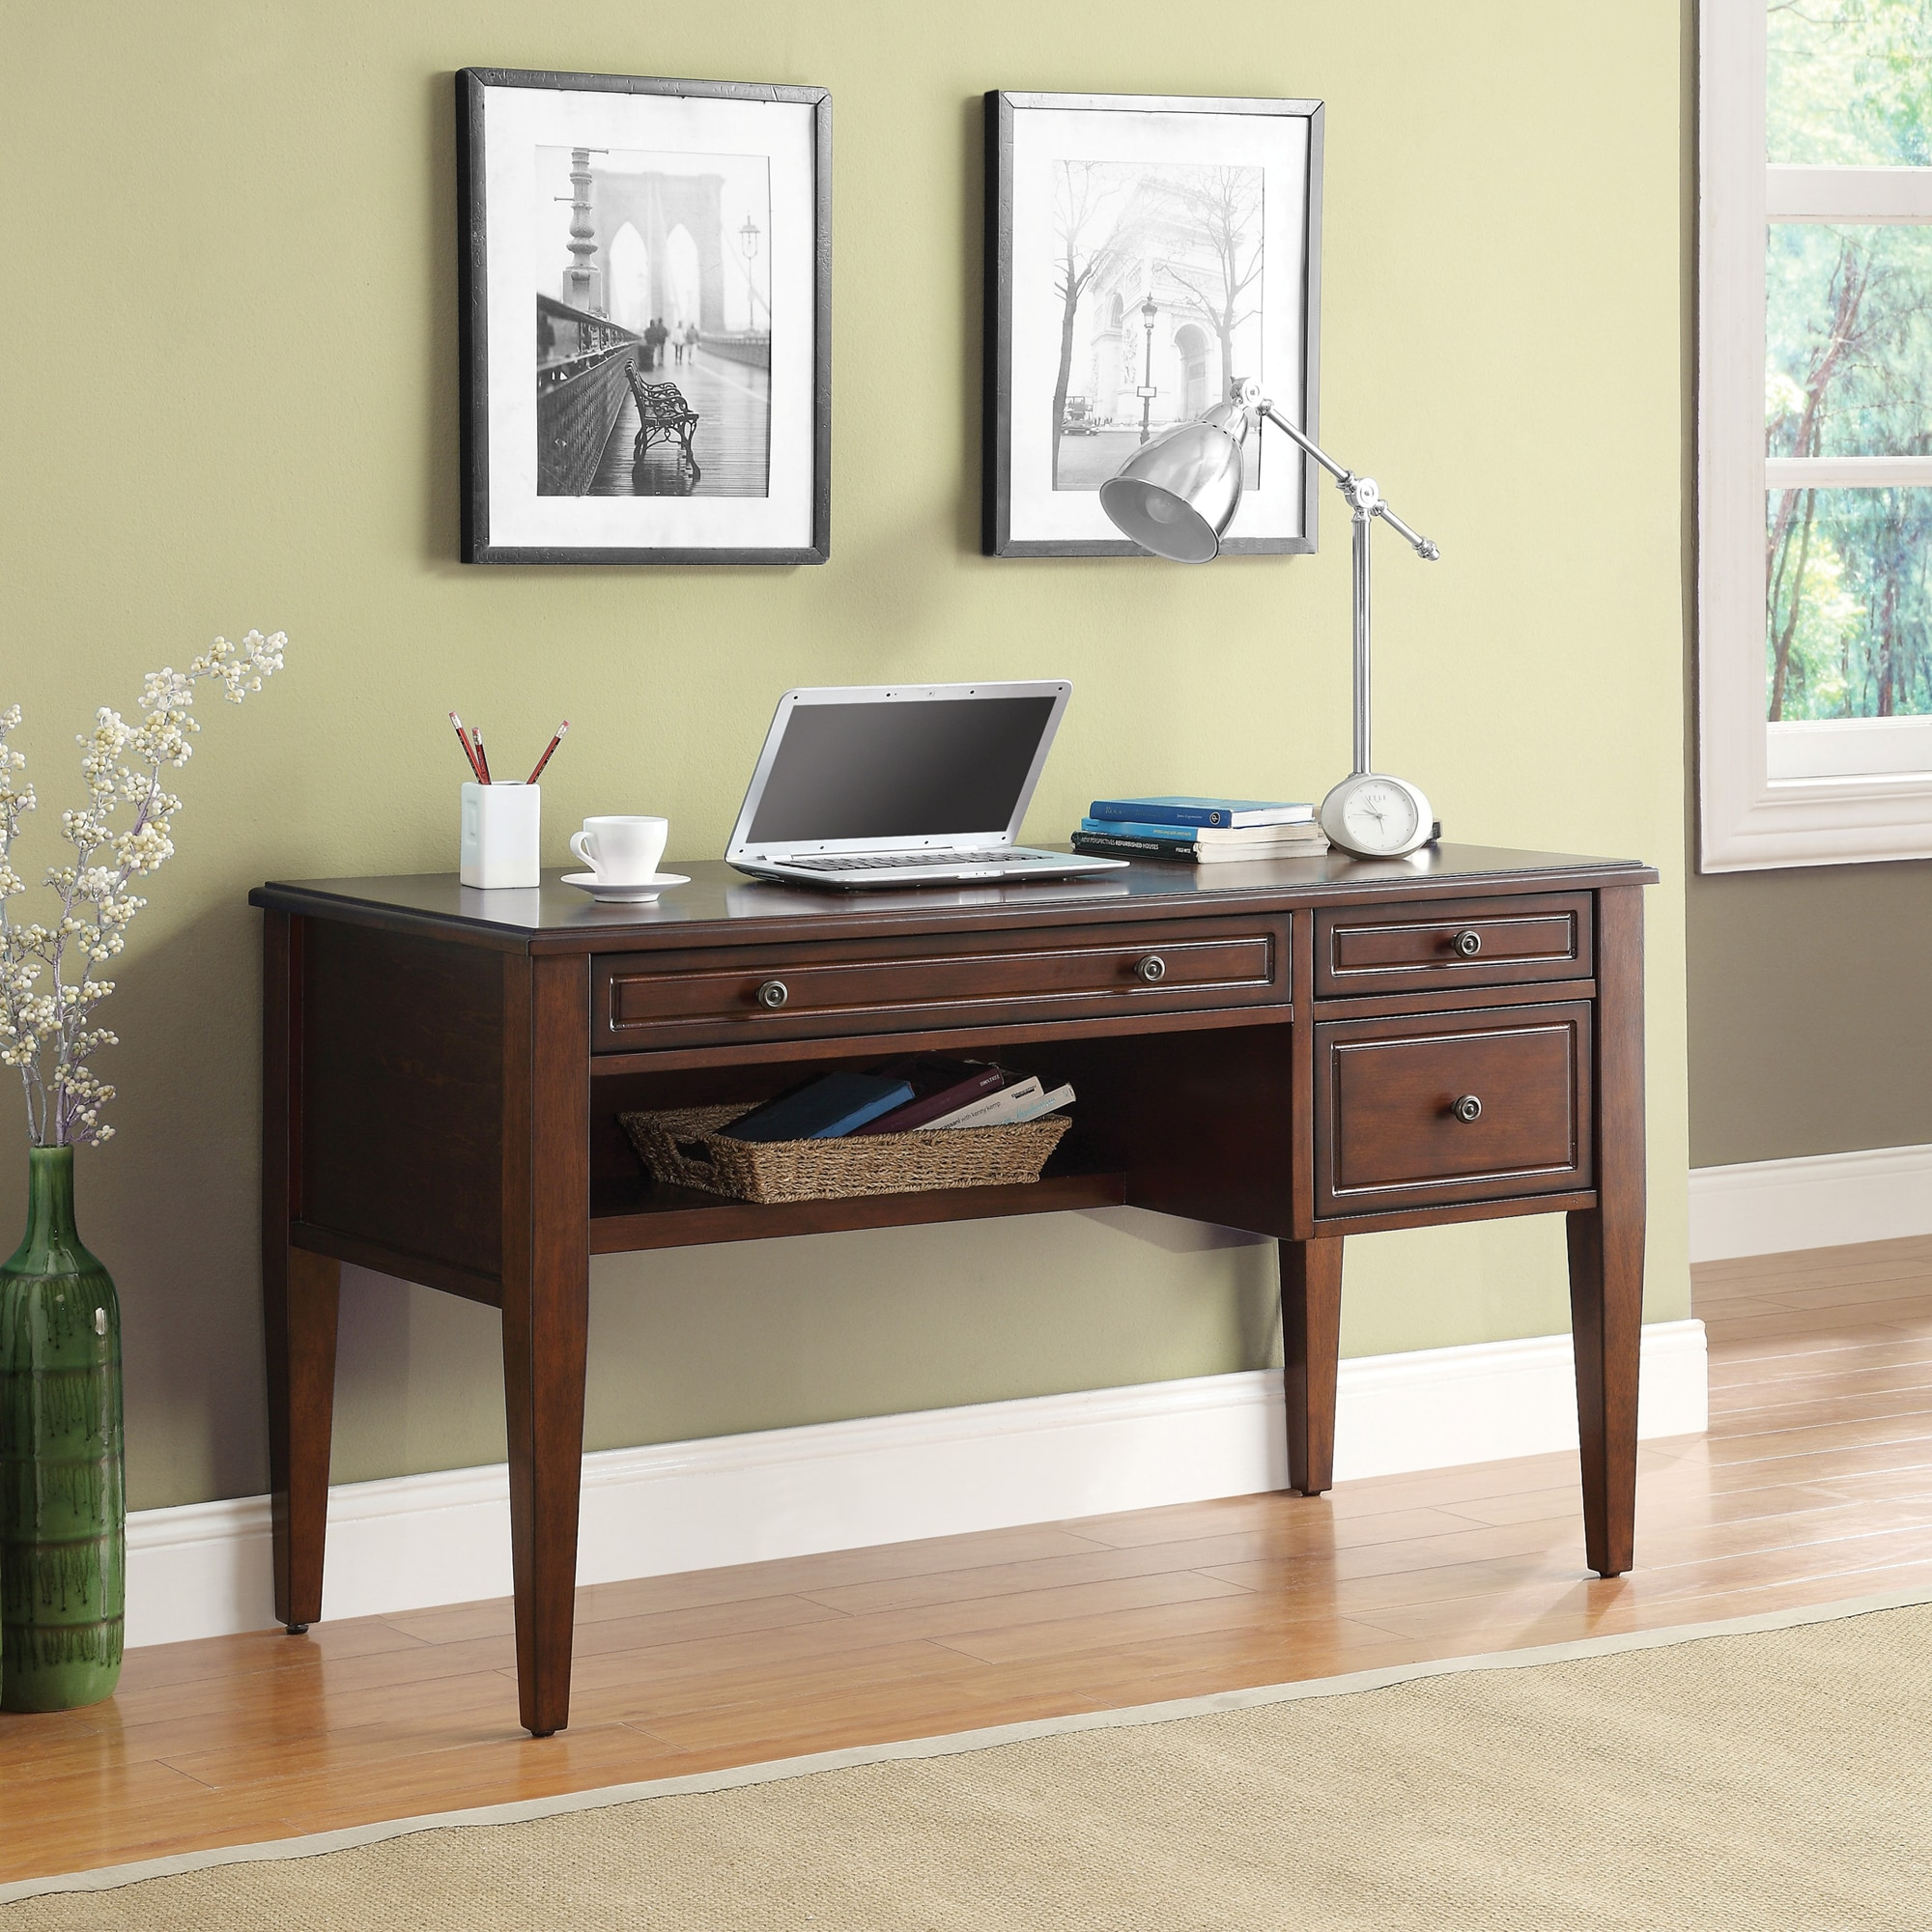 Wonderful Image Of Inspired By Bett Houghton Writing Desk With Pullout Keyboard Drawer 8e66